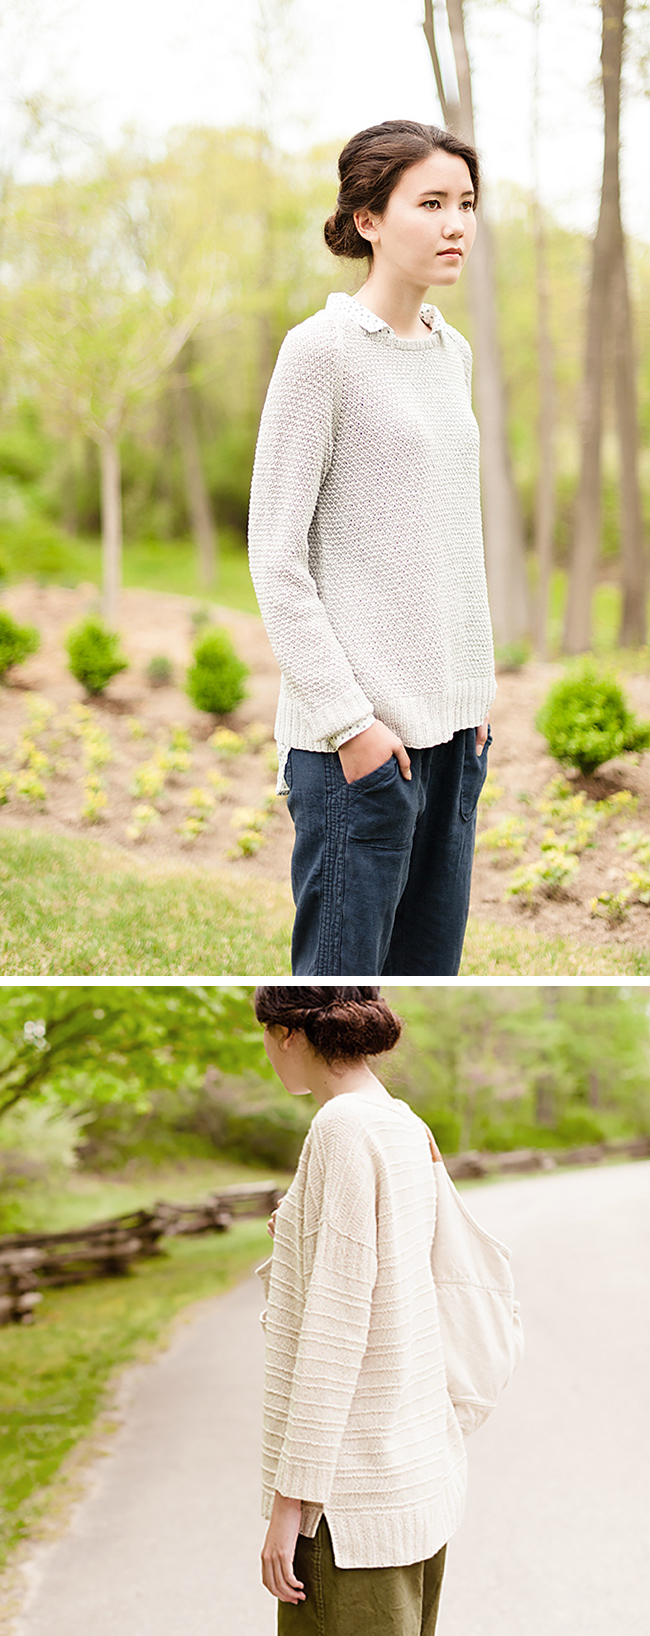 New Favorites: Julie Hoover's insta-classic pullovers